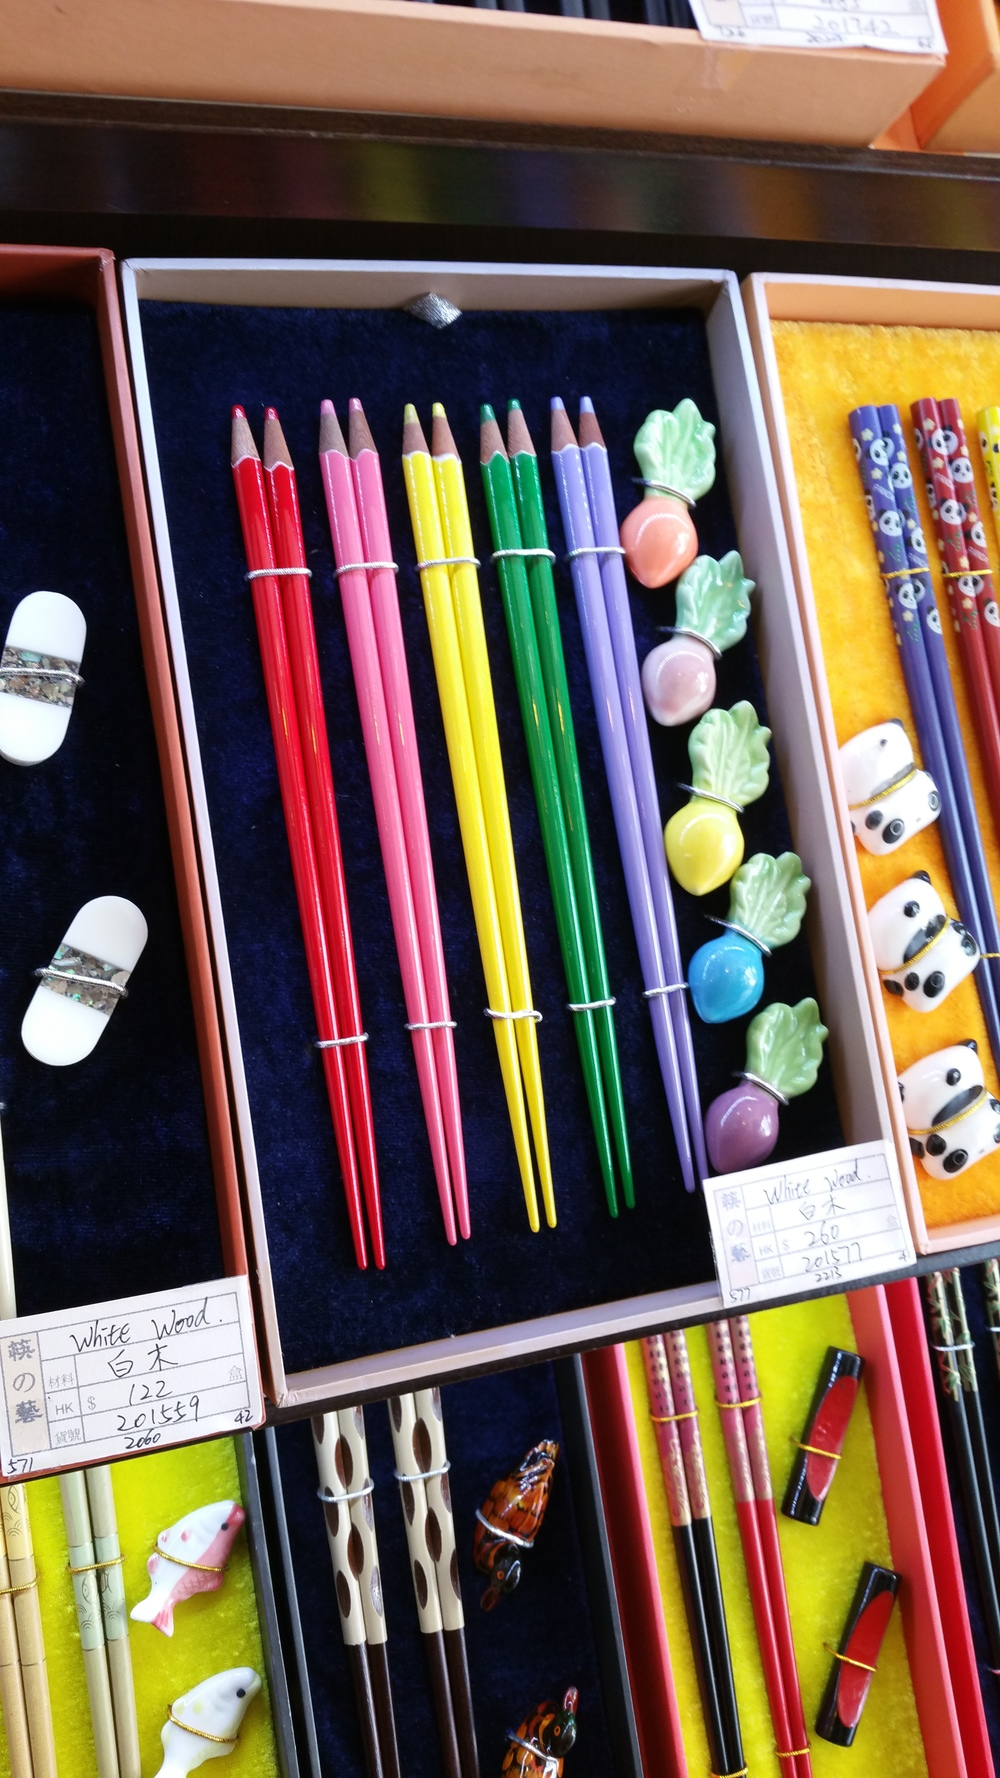 They had a store with dozens of different crazy chopsticks, including these.